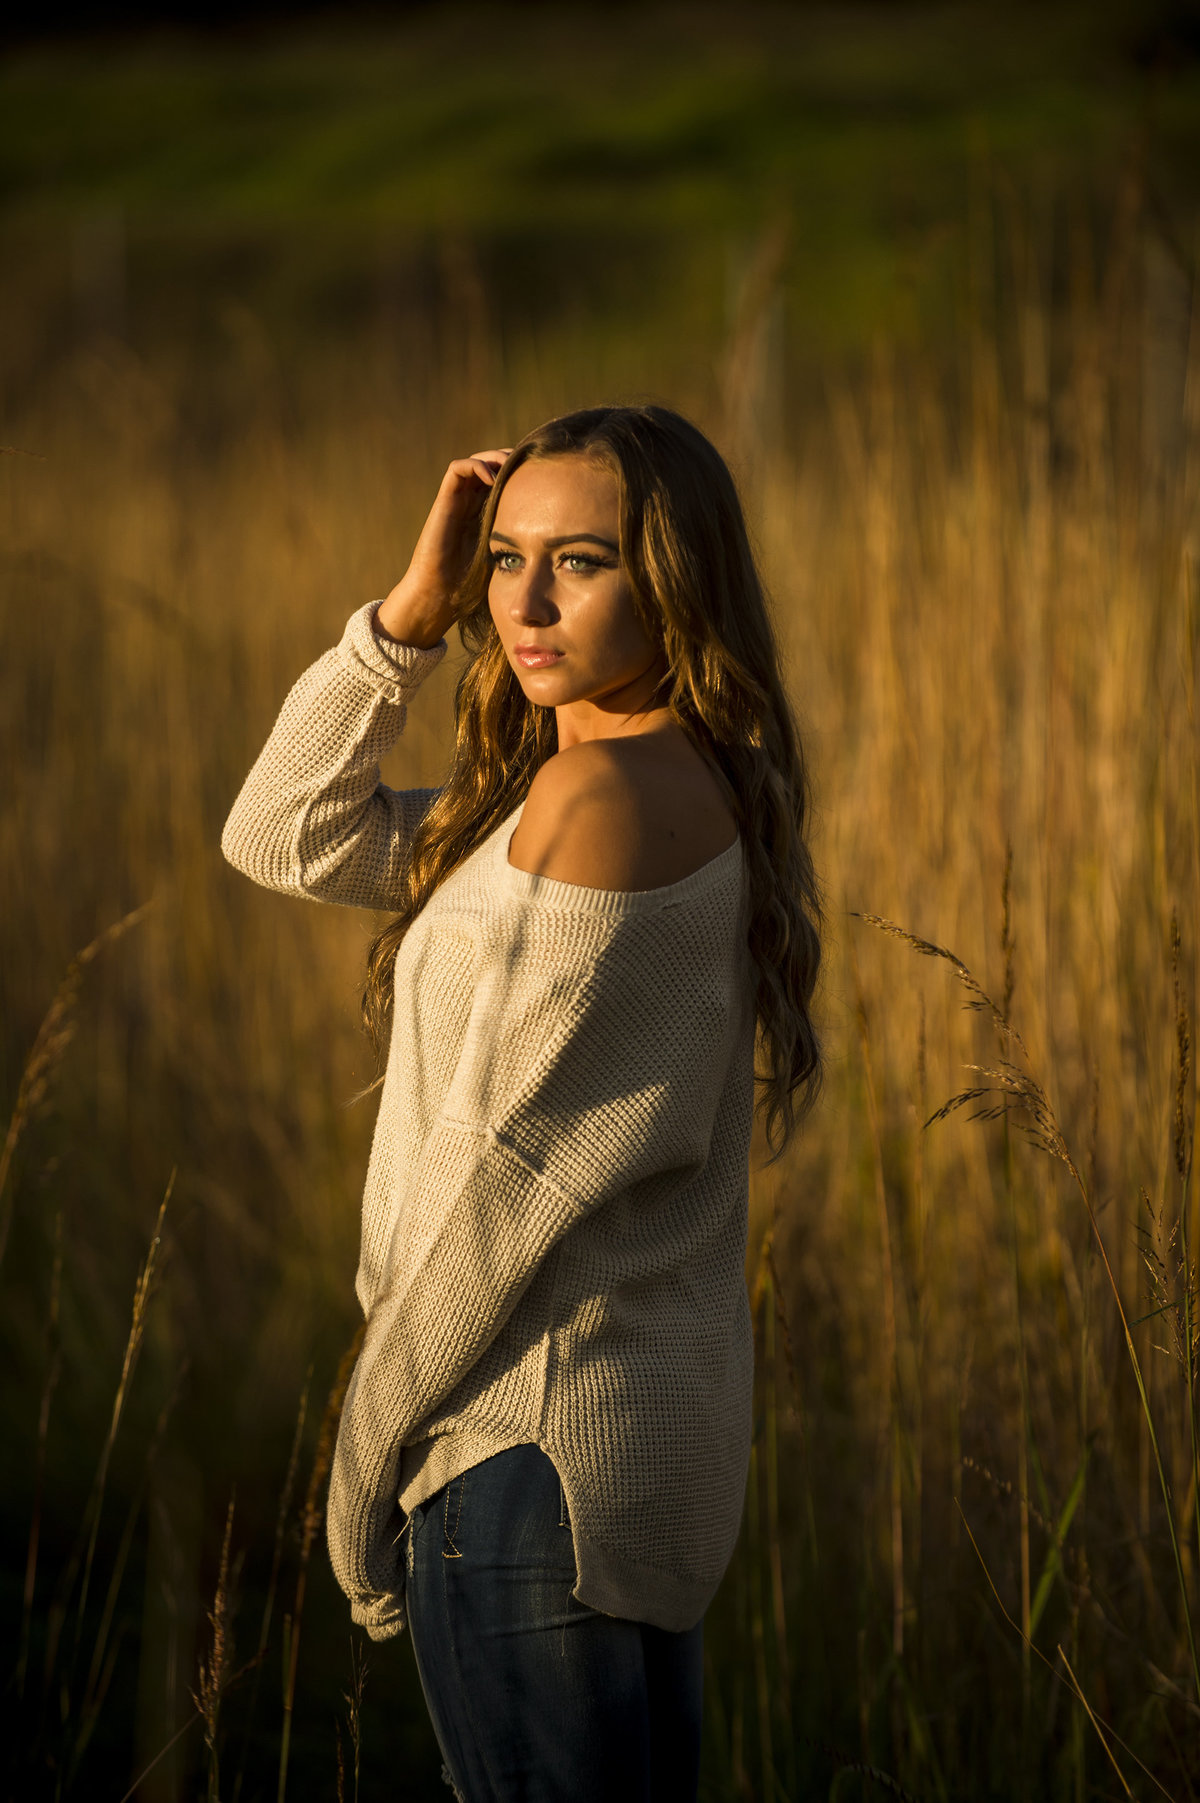 Green Bay Senior Photographer, Appleton Senior Photographer, Green Bay Senior Photography, Appleton Senior Photography, Senior Photography, Senior Photographer, Wisconsin Senior Photography, Wisconsin Senior Photographer